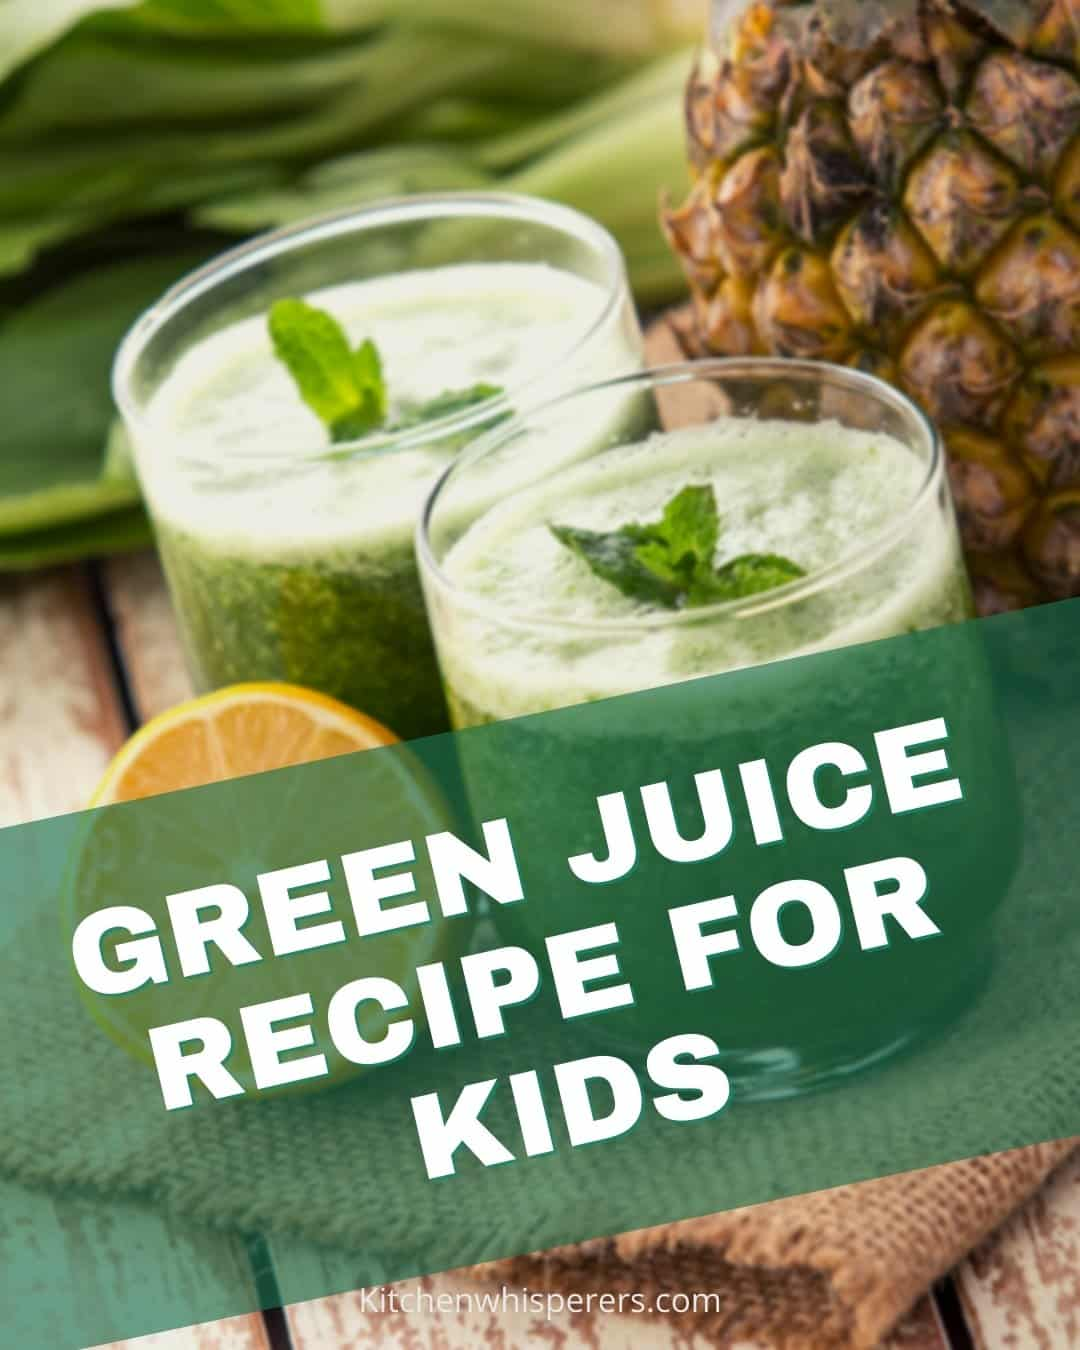 GREEN JUICE RECIPE FOR KIDS (1)